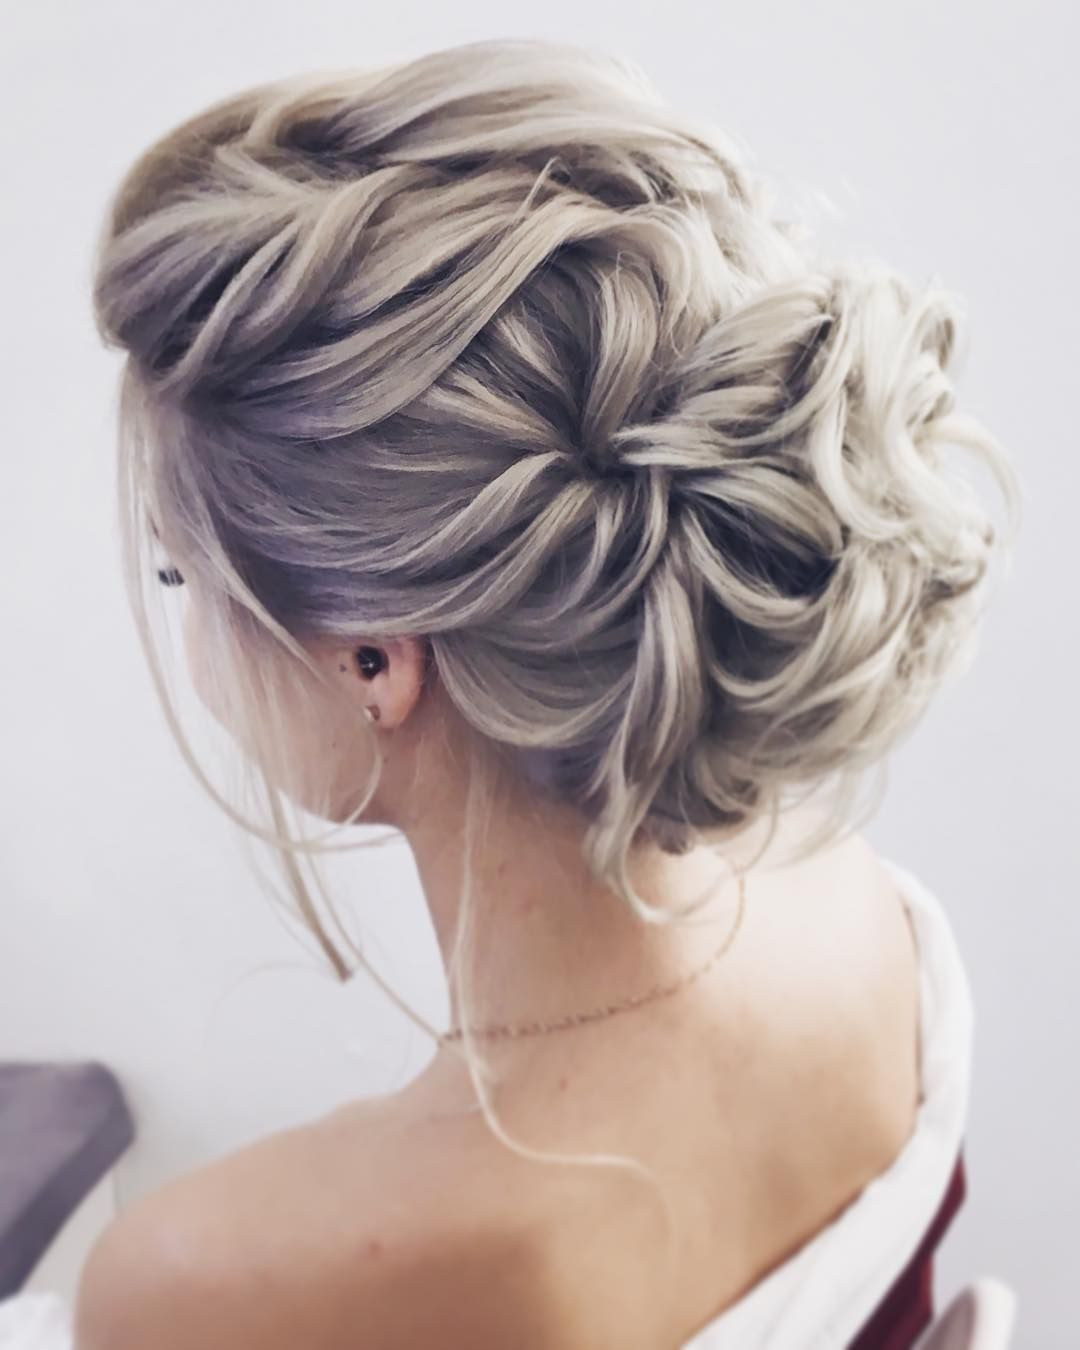 Wedding Hairstyles Ideas: 17+ Dazzling Hairstyles 2019 Ideas